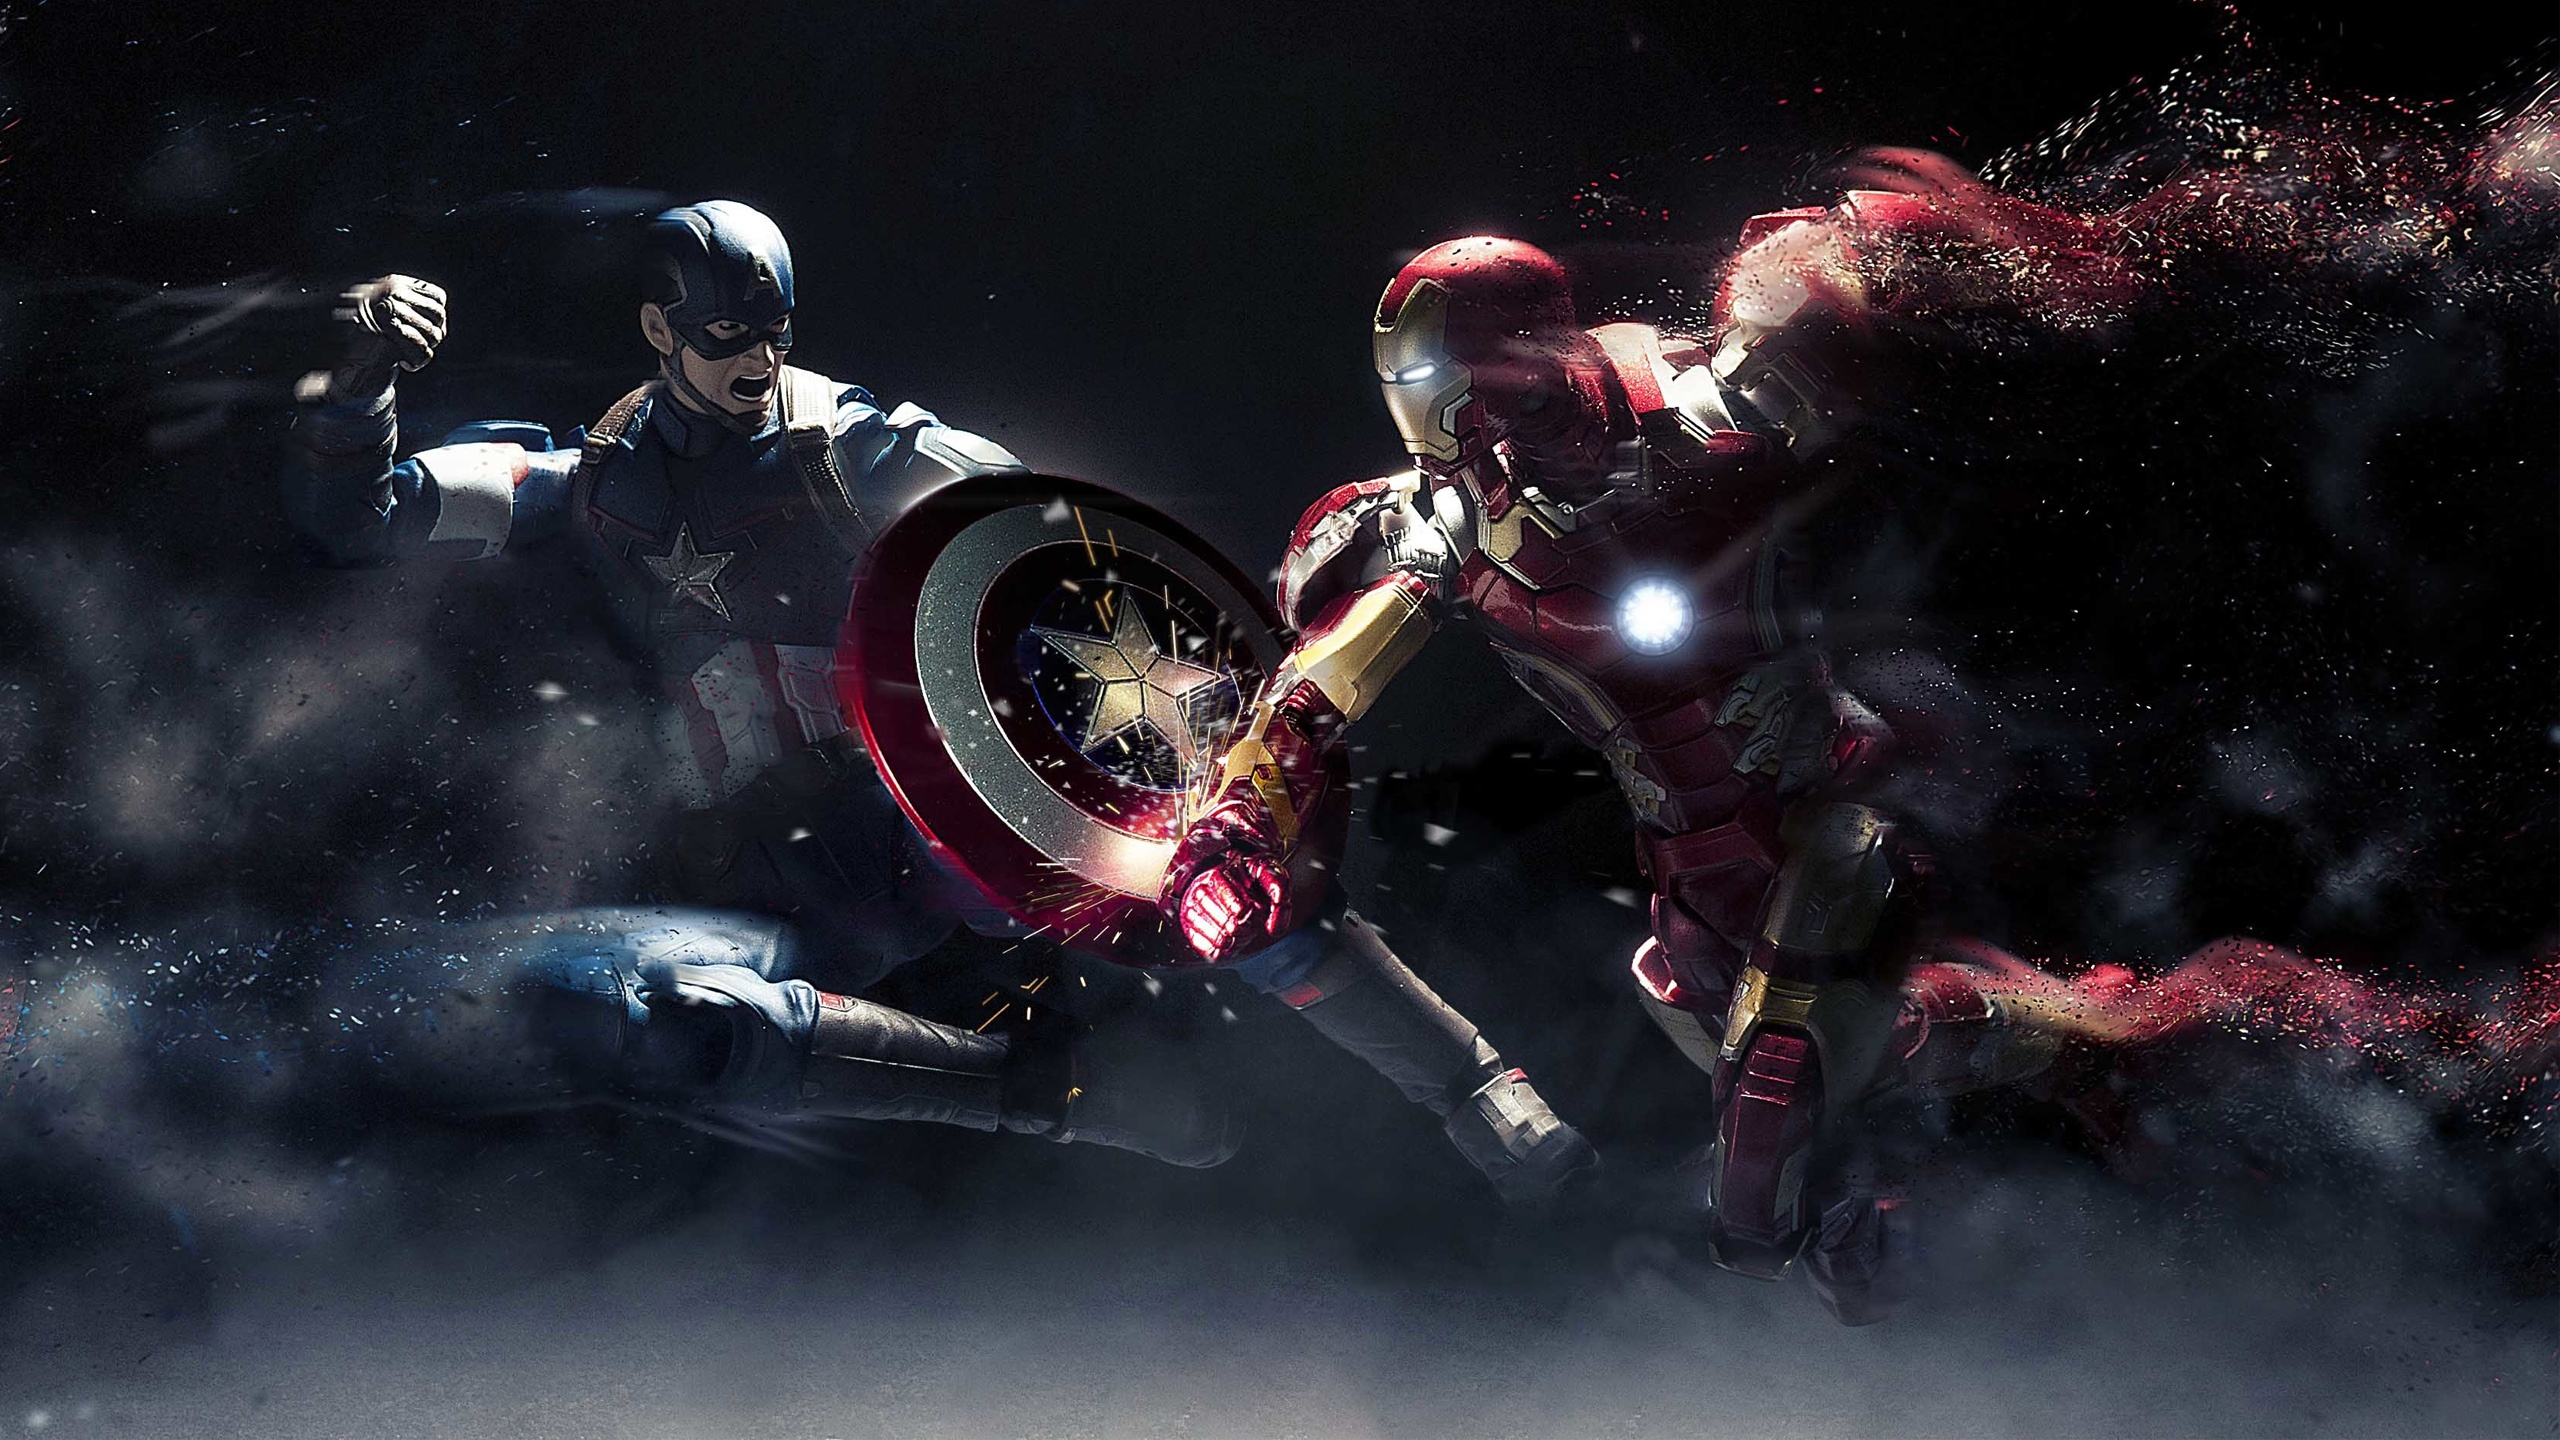 Iron Man Images Free Download: Captain America Vs Iron Man Wallpapers In Jpg Format For